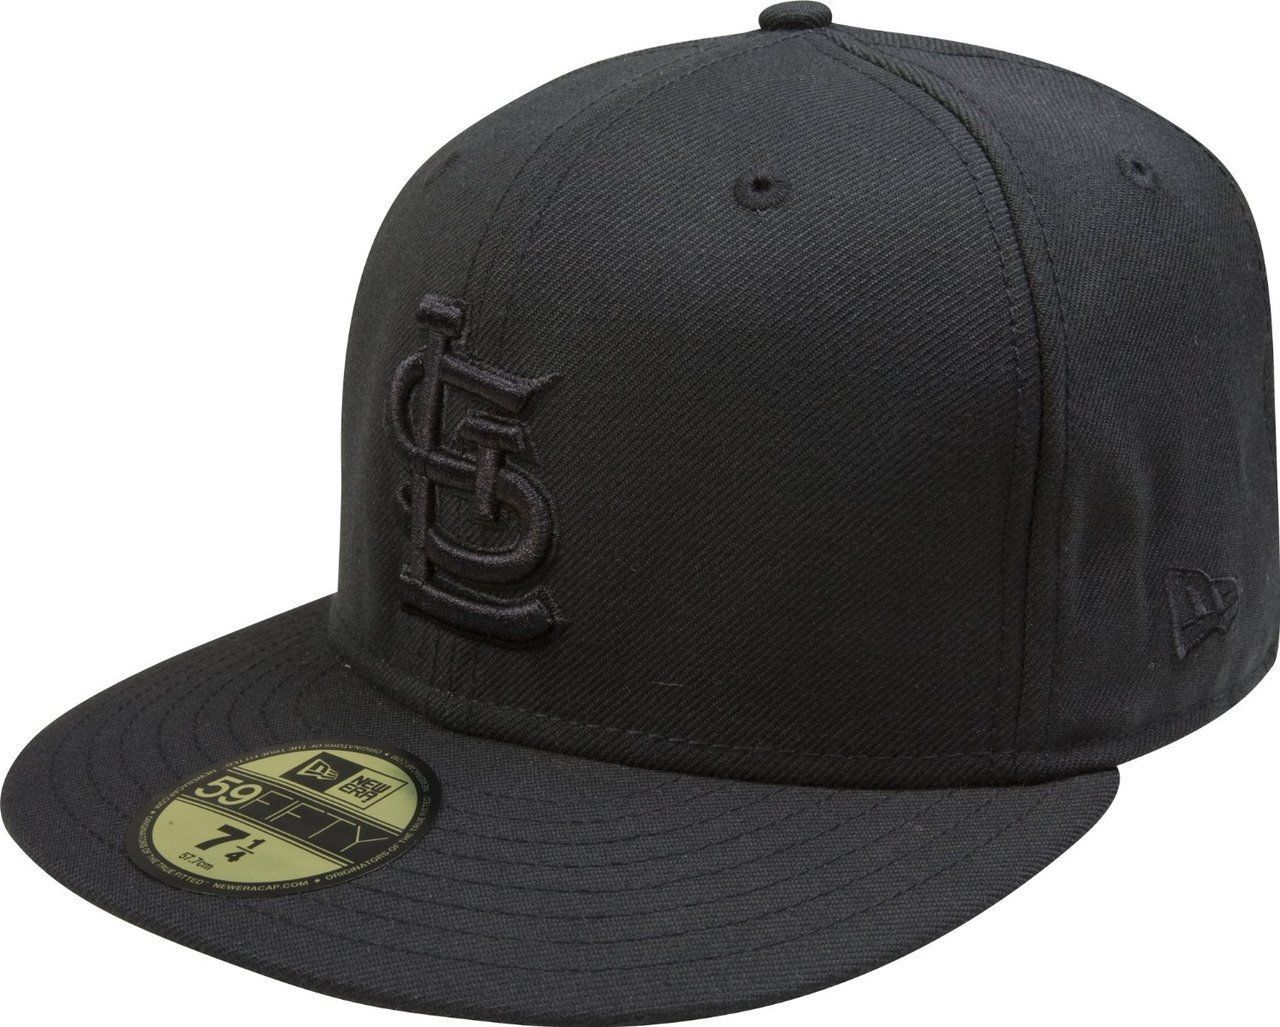 New Era 59Fifty MLB St. Louis Cardinals Black on Black Fitted Cap